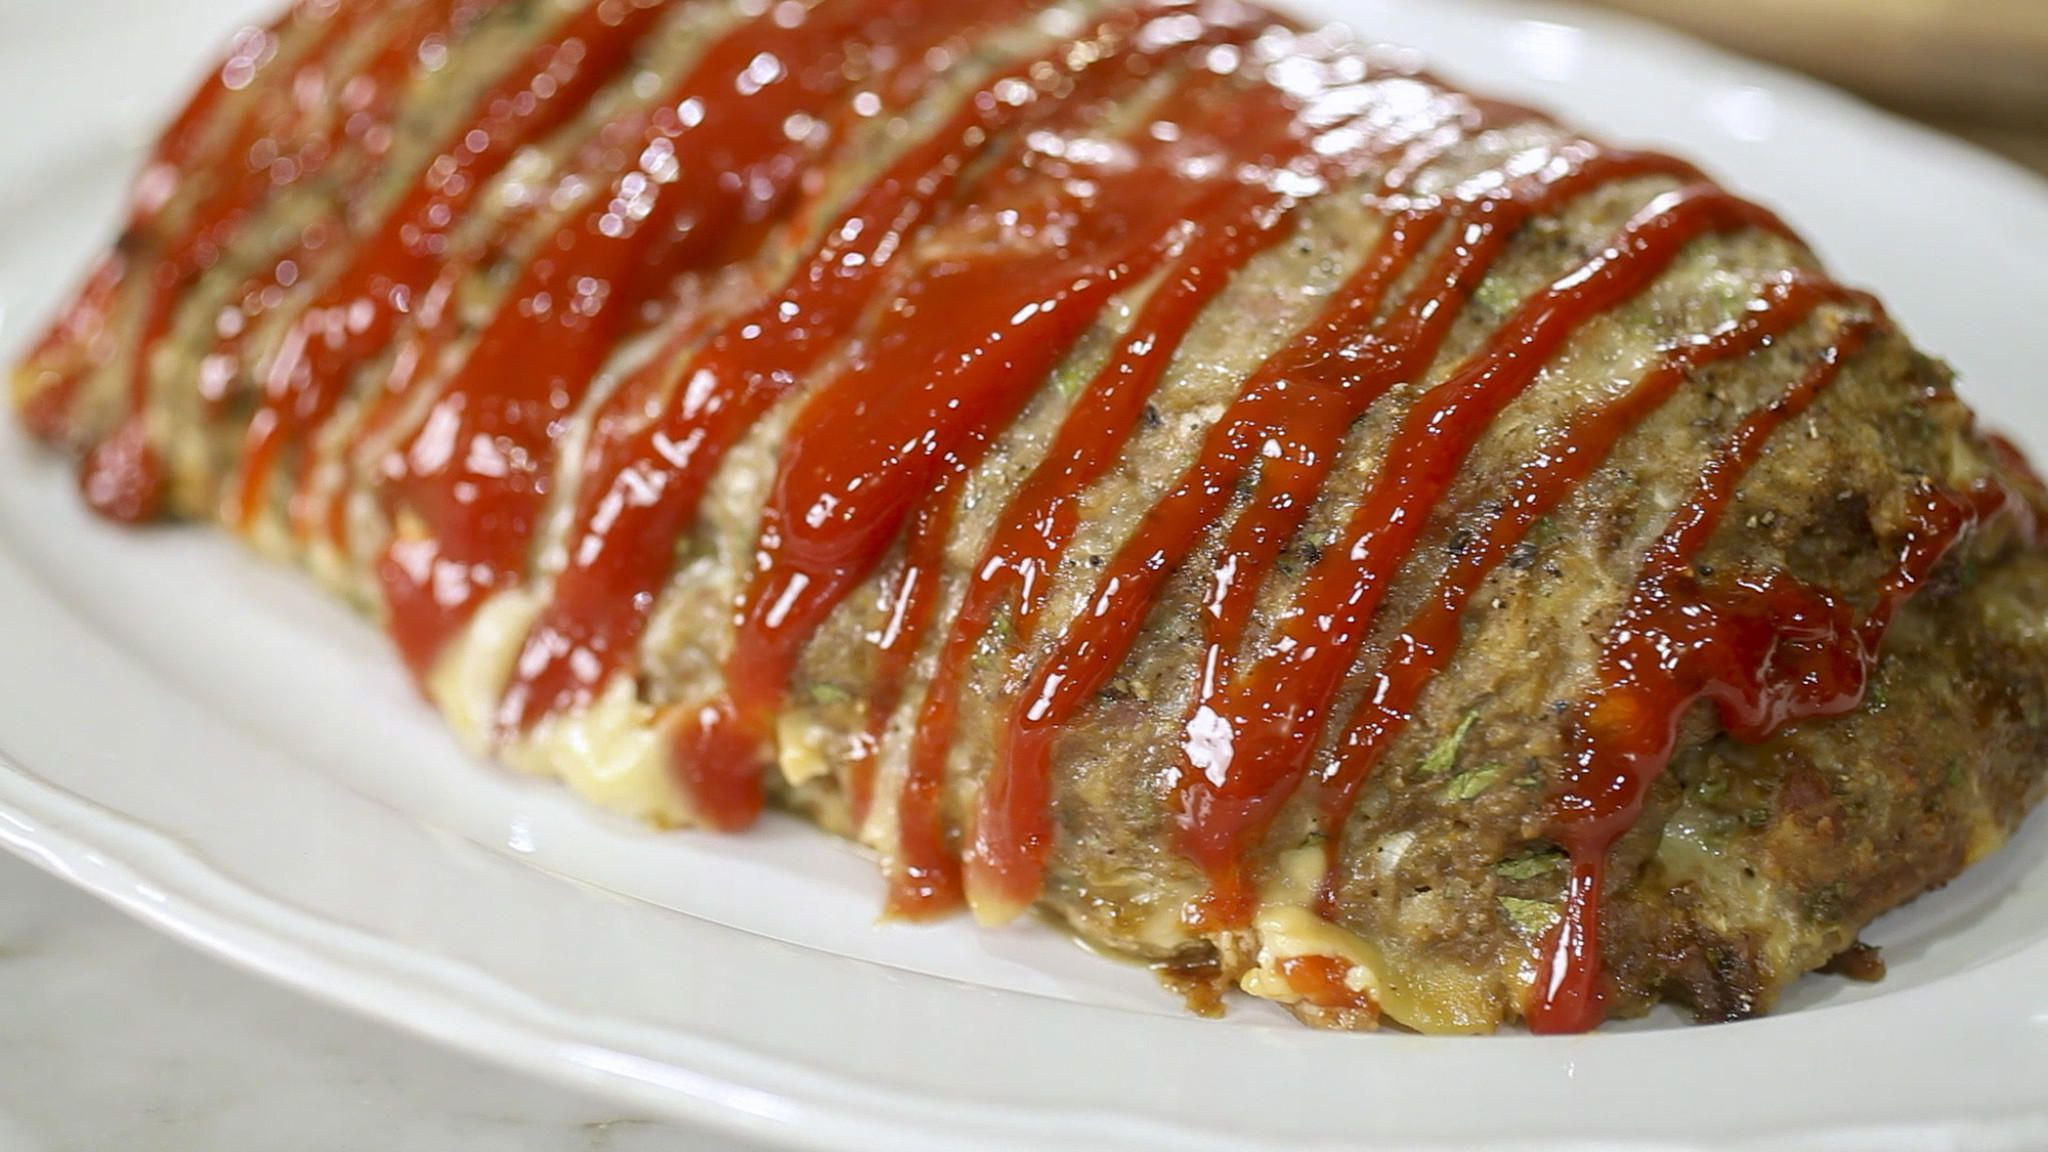 Wolfie's Thursday night turkey meatloaf #valeriebertinellirecipes Wolfie's Thursday night turkey meatloaf. Pancetta adds a sublime layer of flavor and makes this meatloaf stand out from a sea of too-similar recipes. Makes excellent sandwiches the day after. Recipe by Valerie Bertinelli. #valeriebertinellirecipes